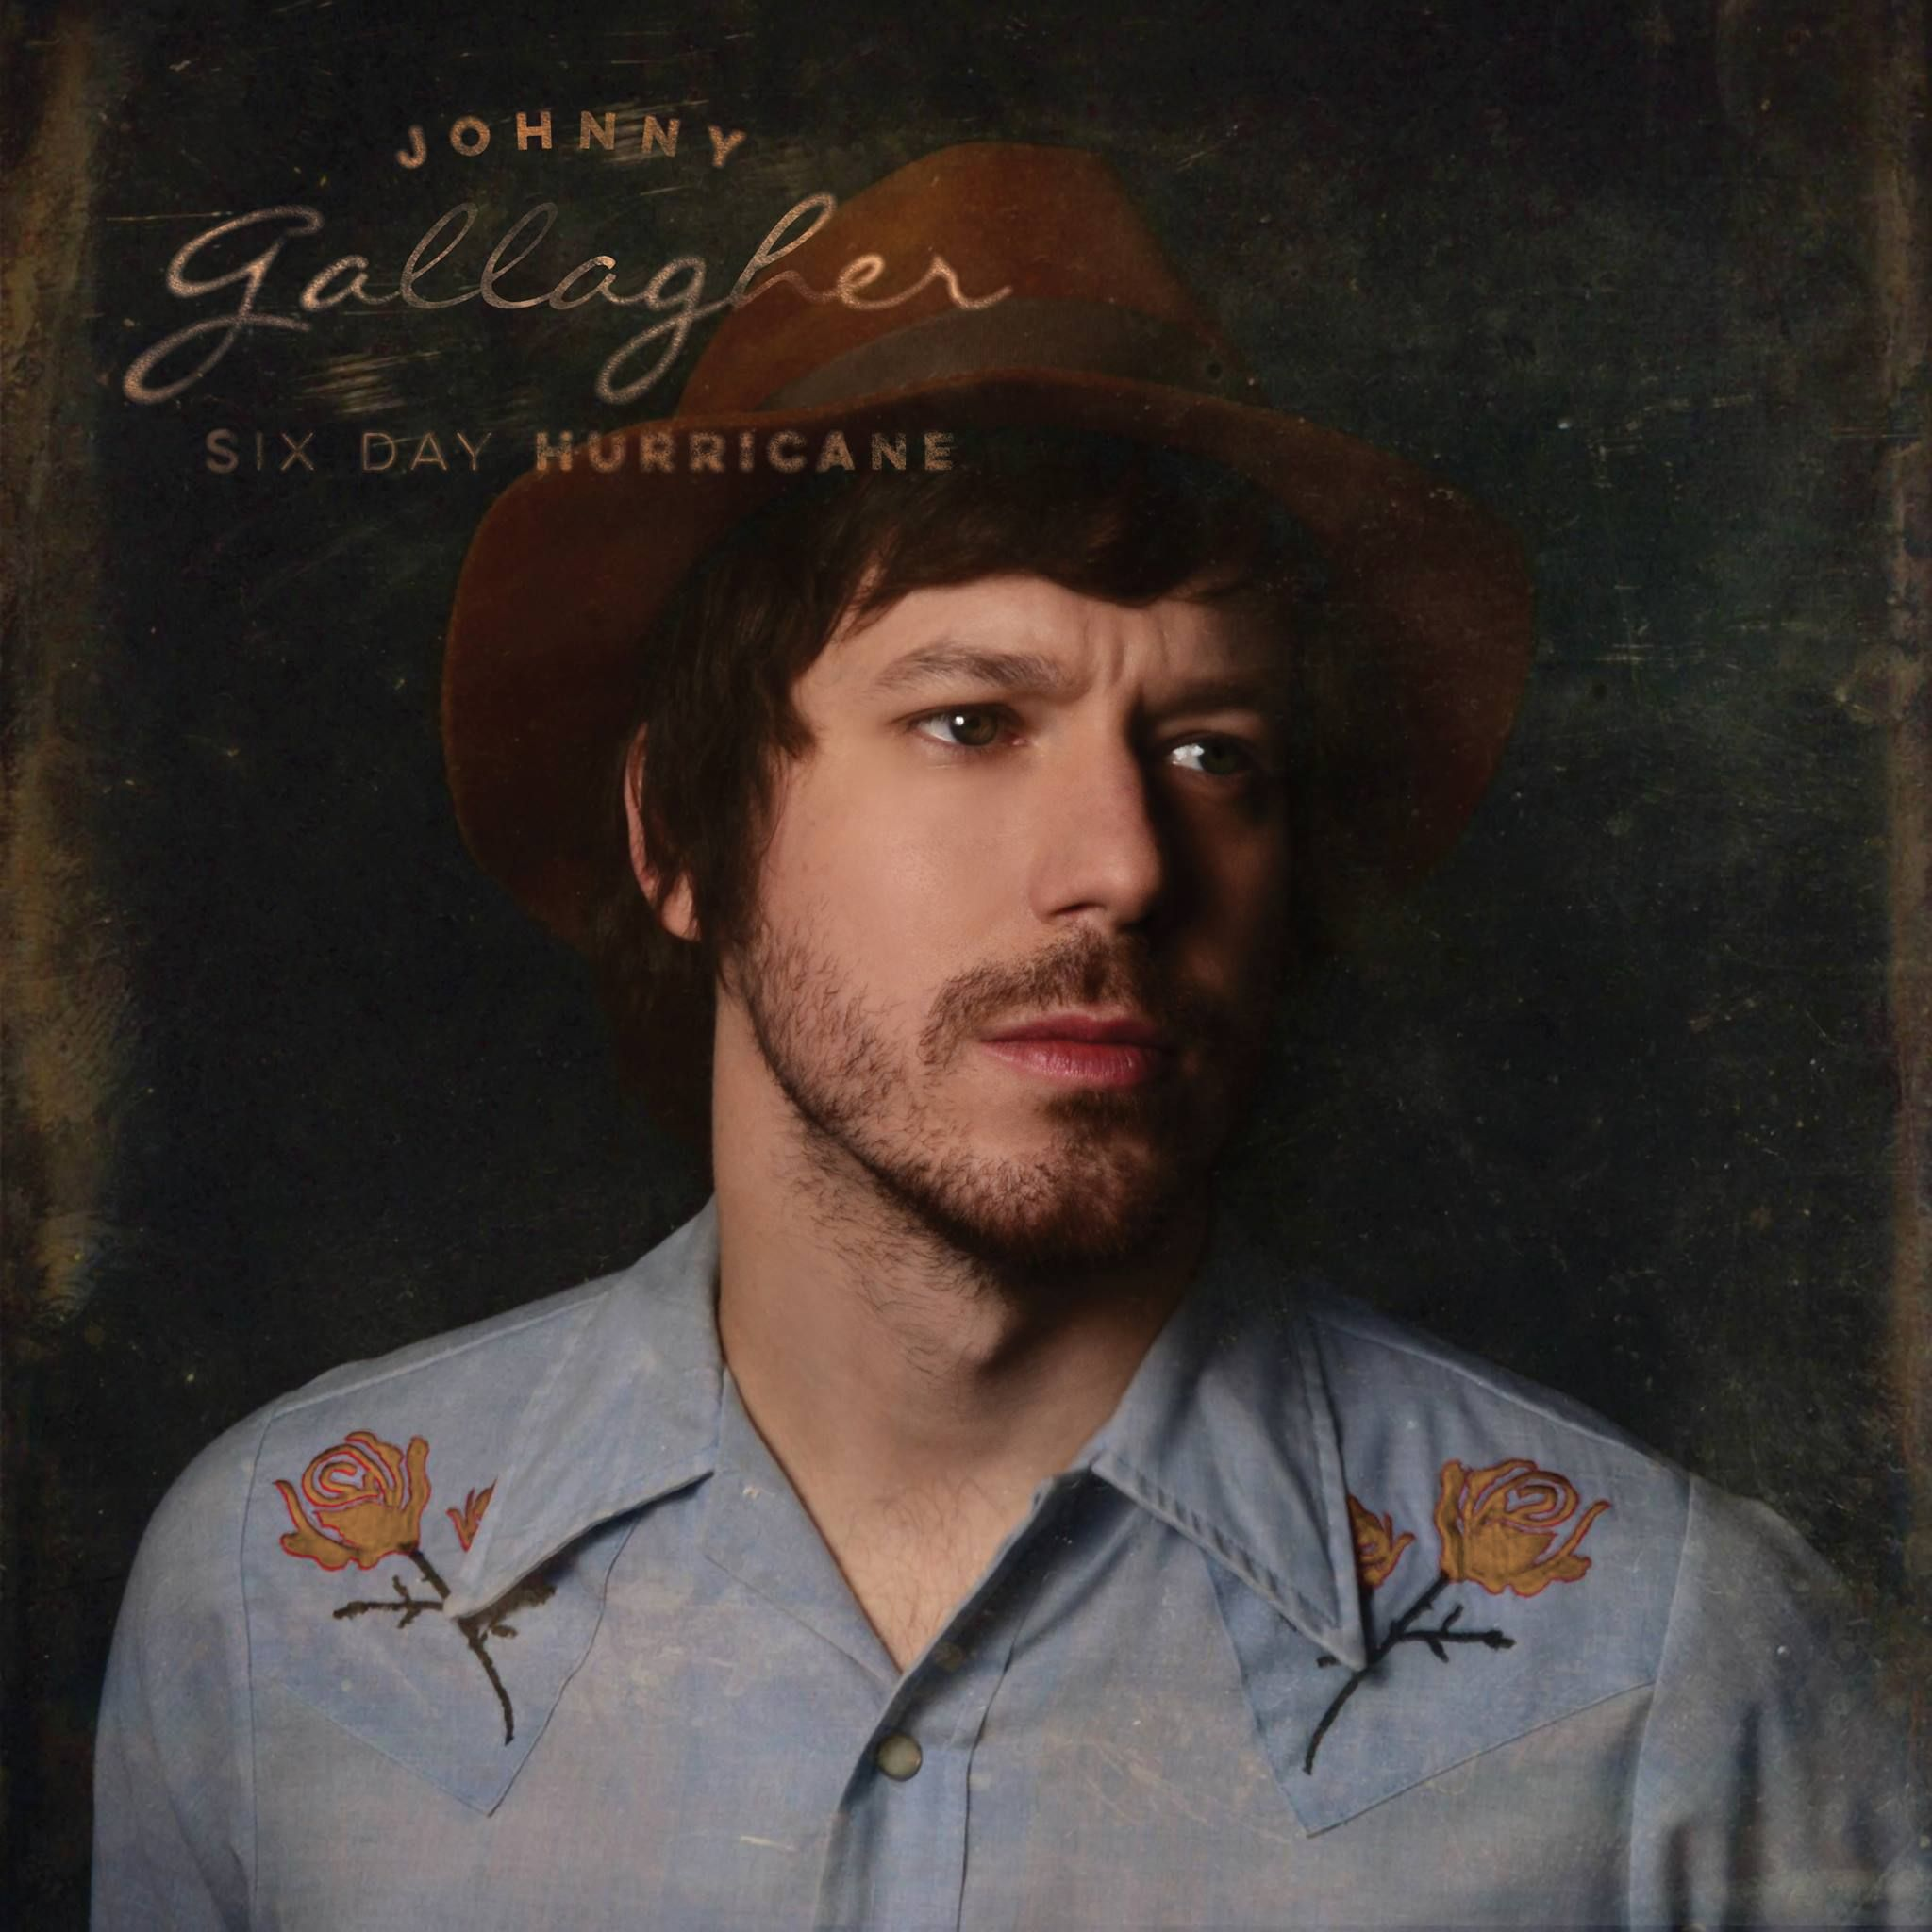 Johnny Gallagher (Album Release) w/ Andrew Kirell: